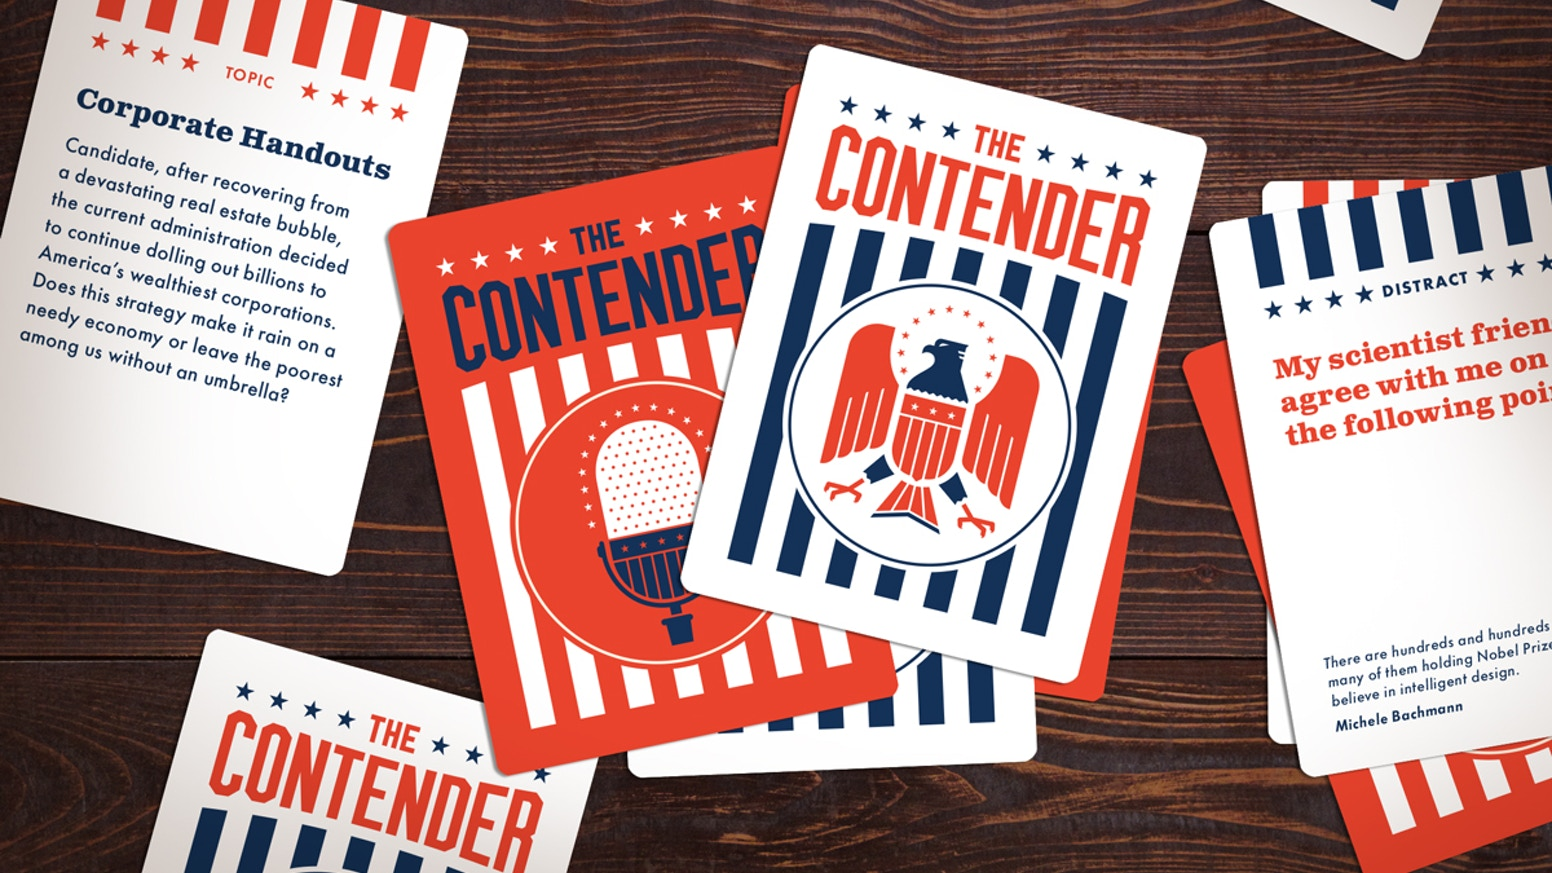 In the grand tradition of presidential debates comes a social card game straight from the eagle's beak of American democracy. Get your copy today.